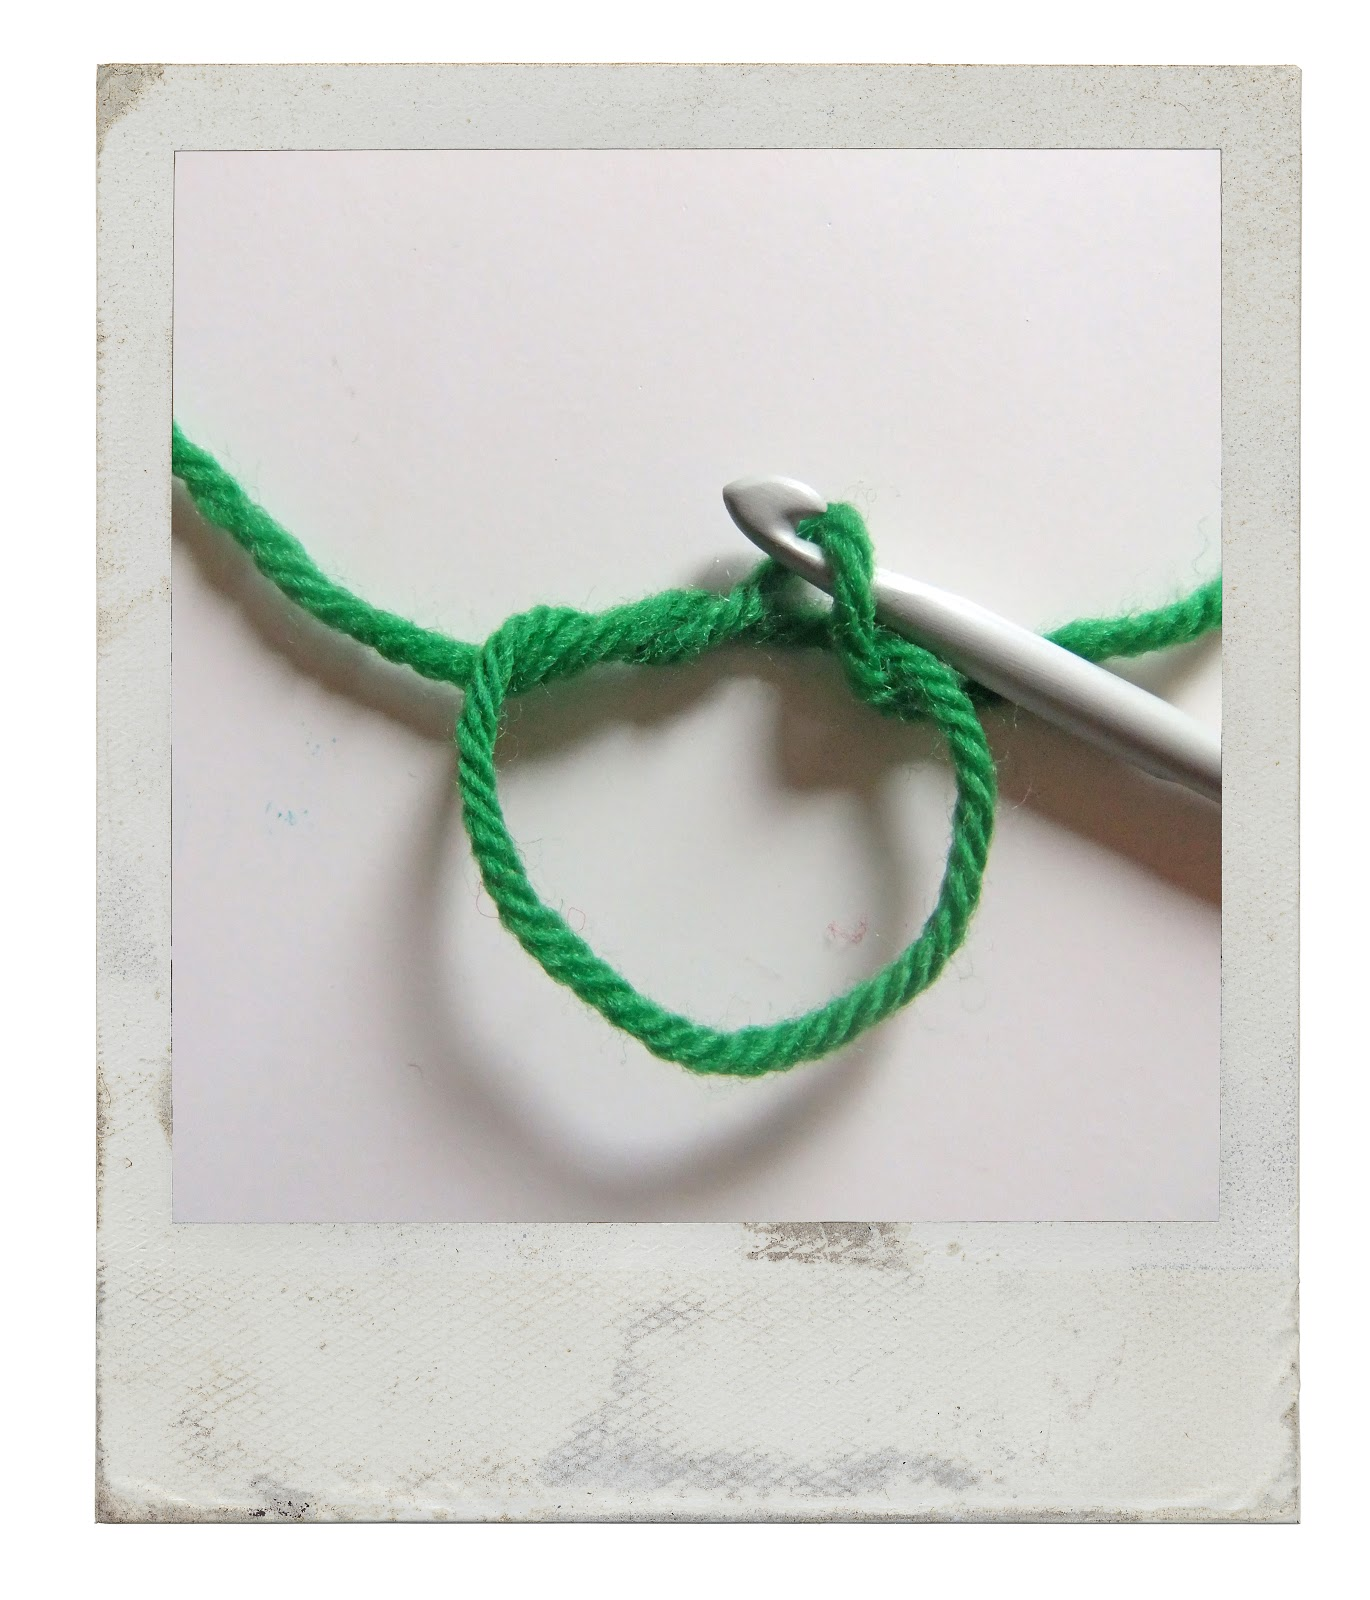 Magic ring tutorial woolnhook by leonie morgan magic ring tutorial baditri Images